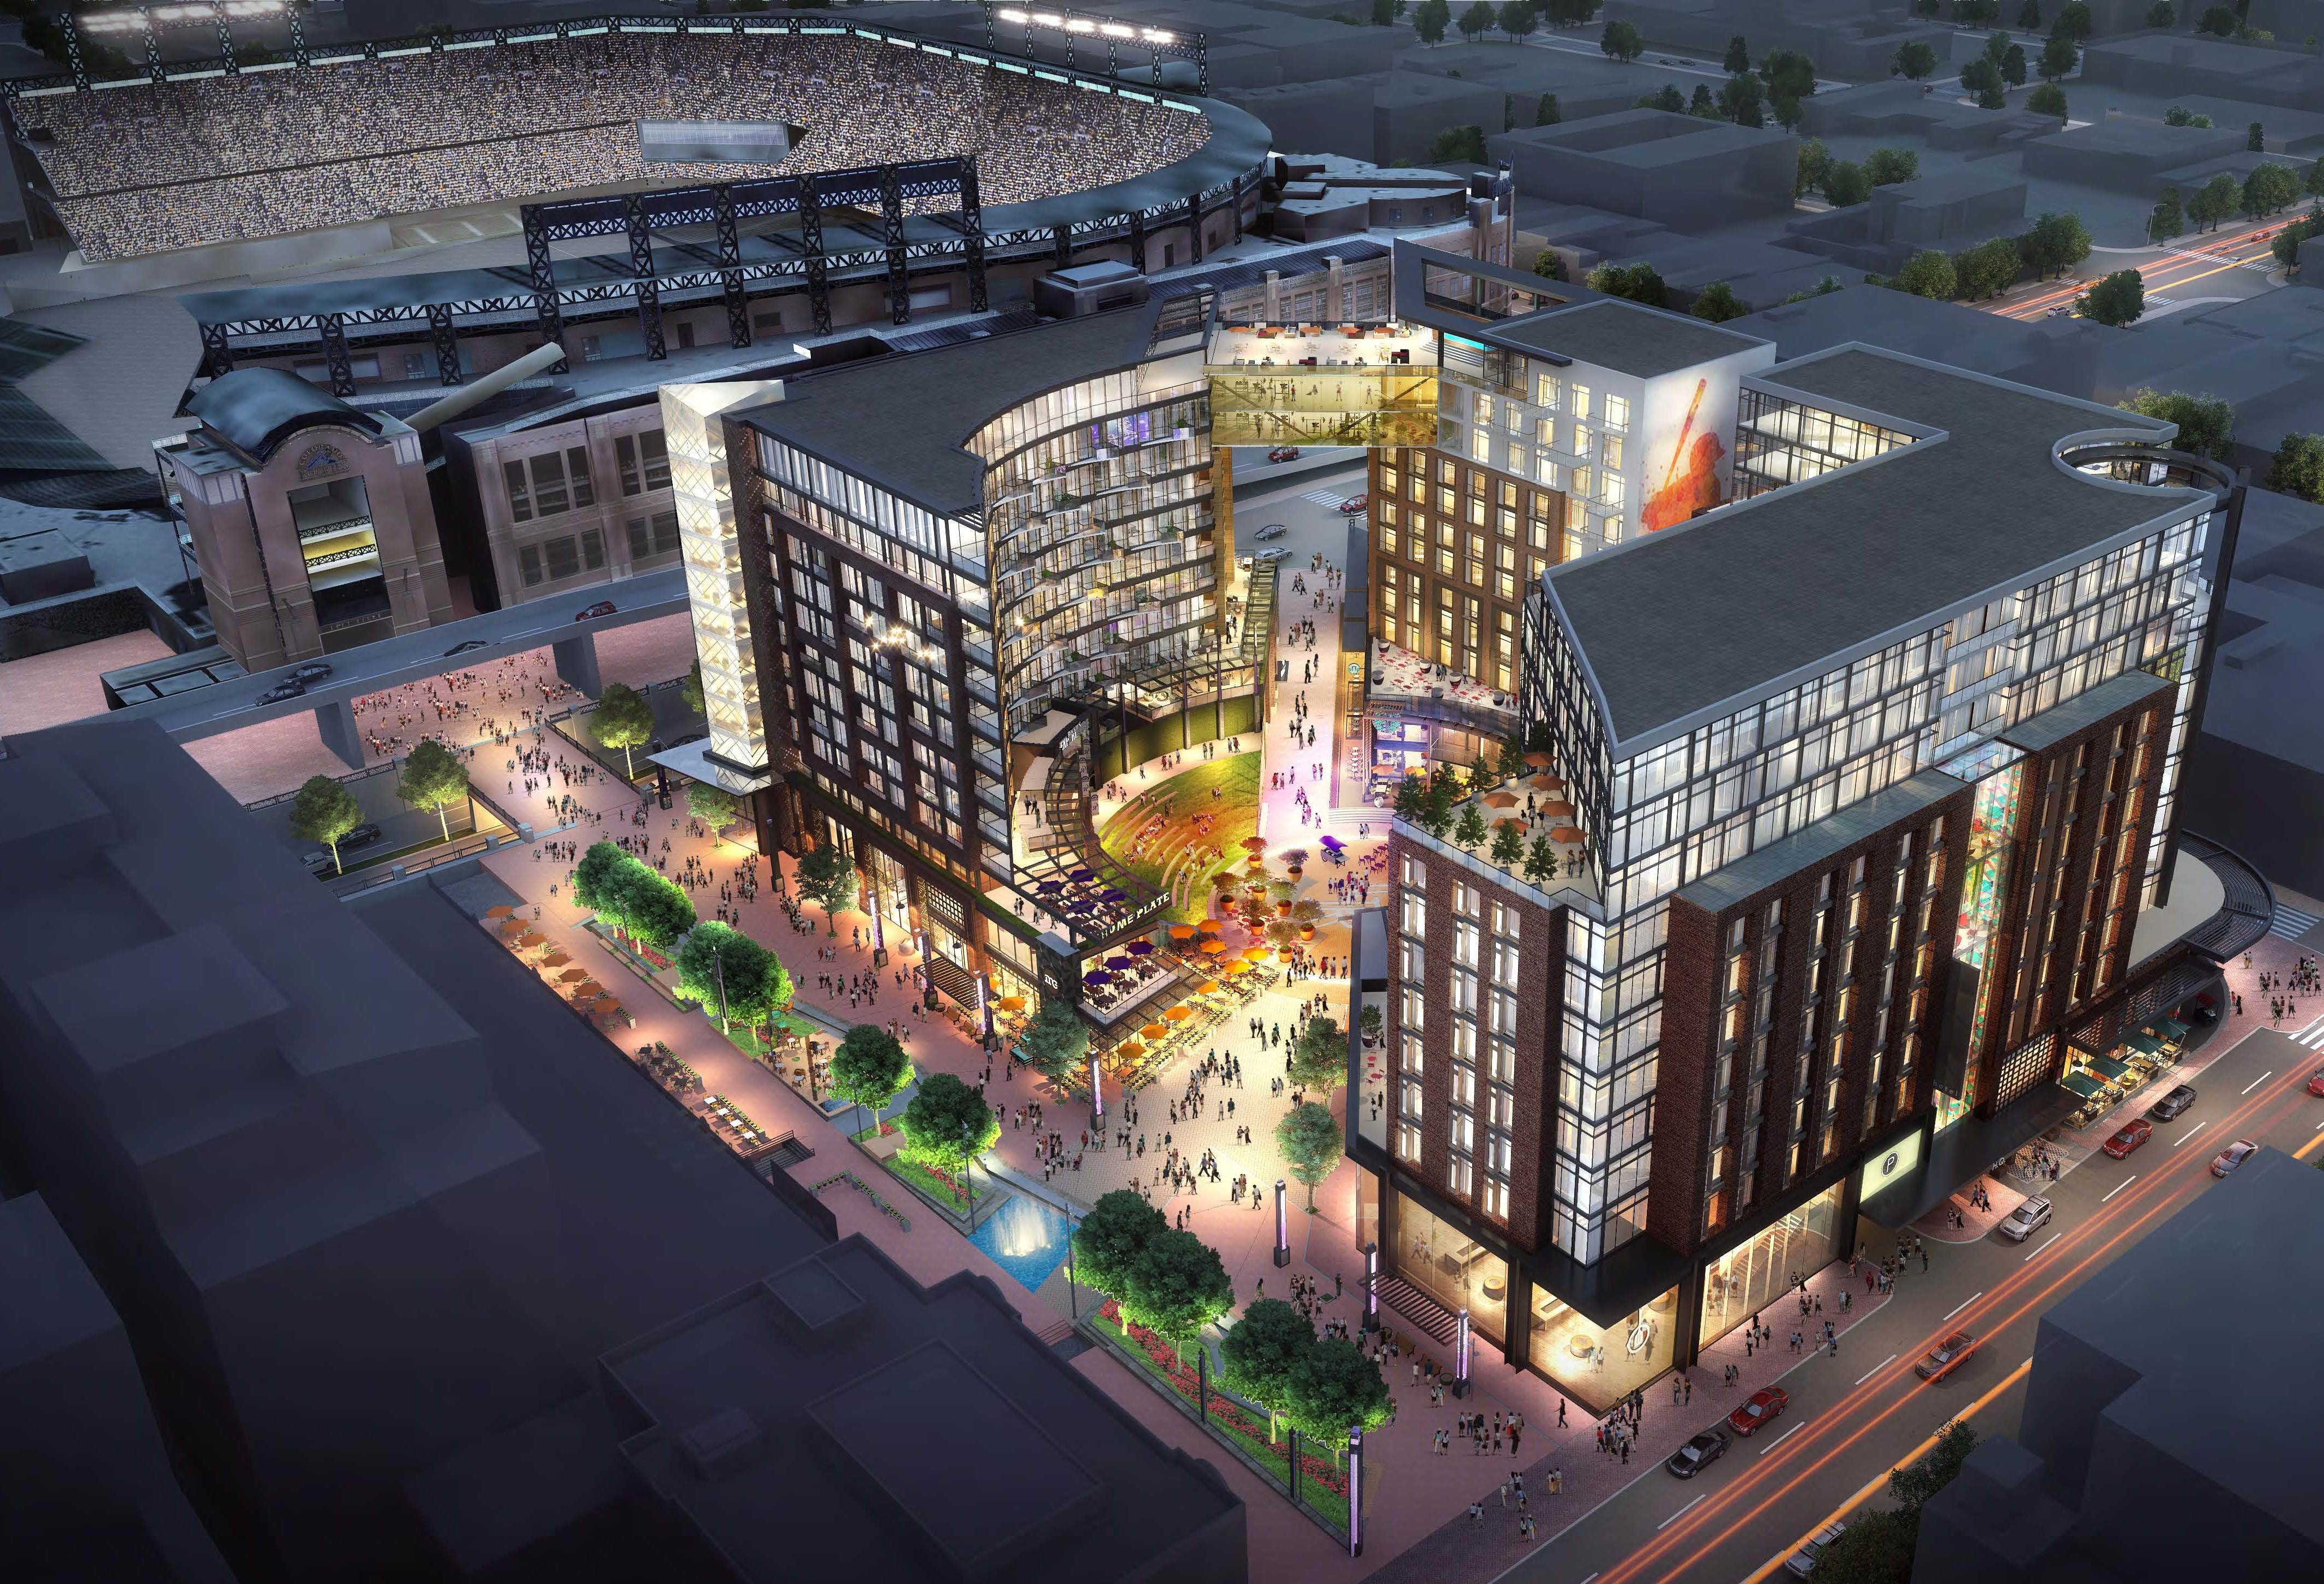 This Rendering Shows The Colorado Rockiesu0027 West Lot Development That Will  Cover A City Block Adjacent To Wynkoop Plaza And Coors Field.